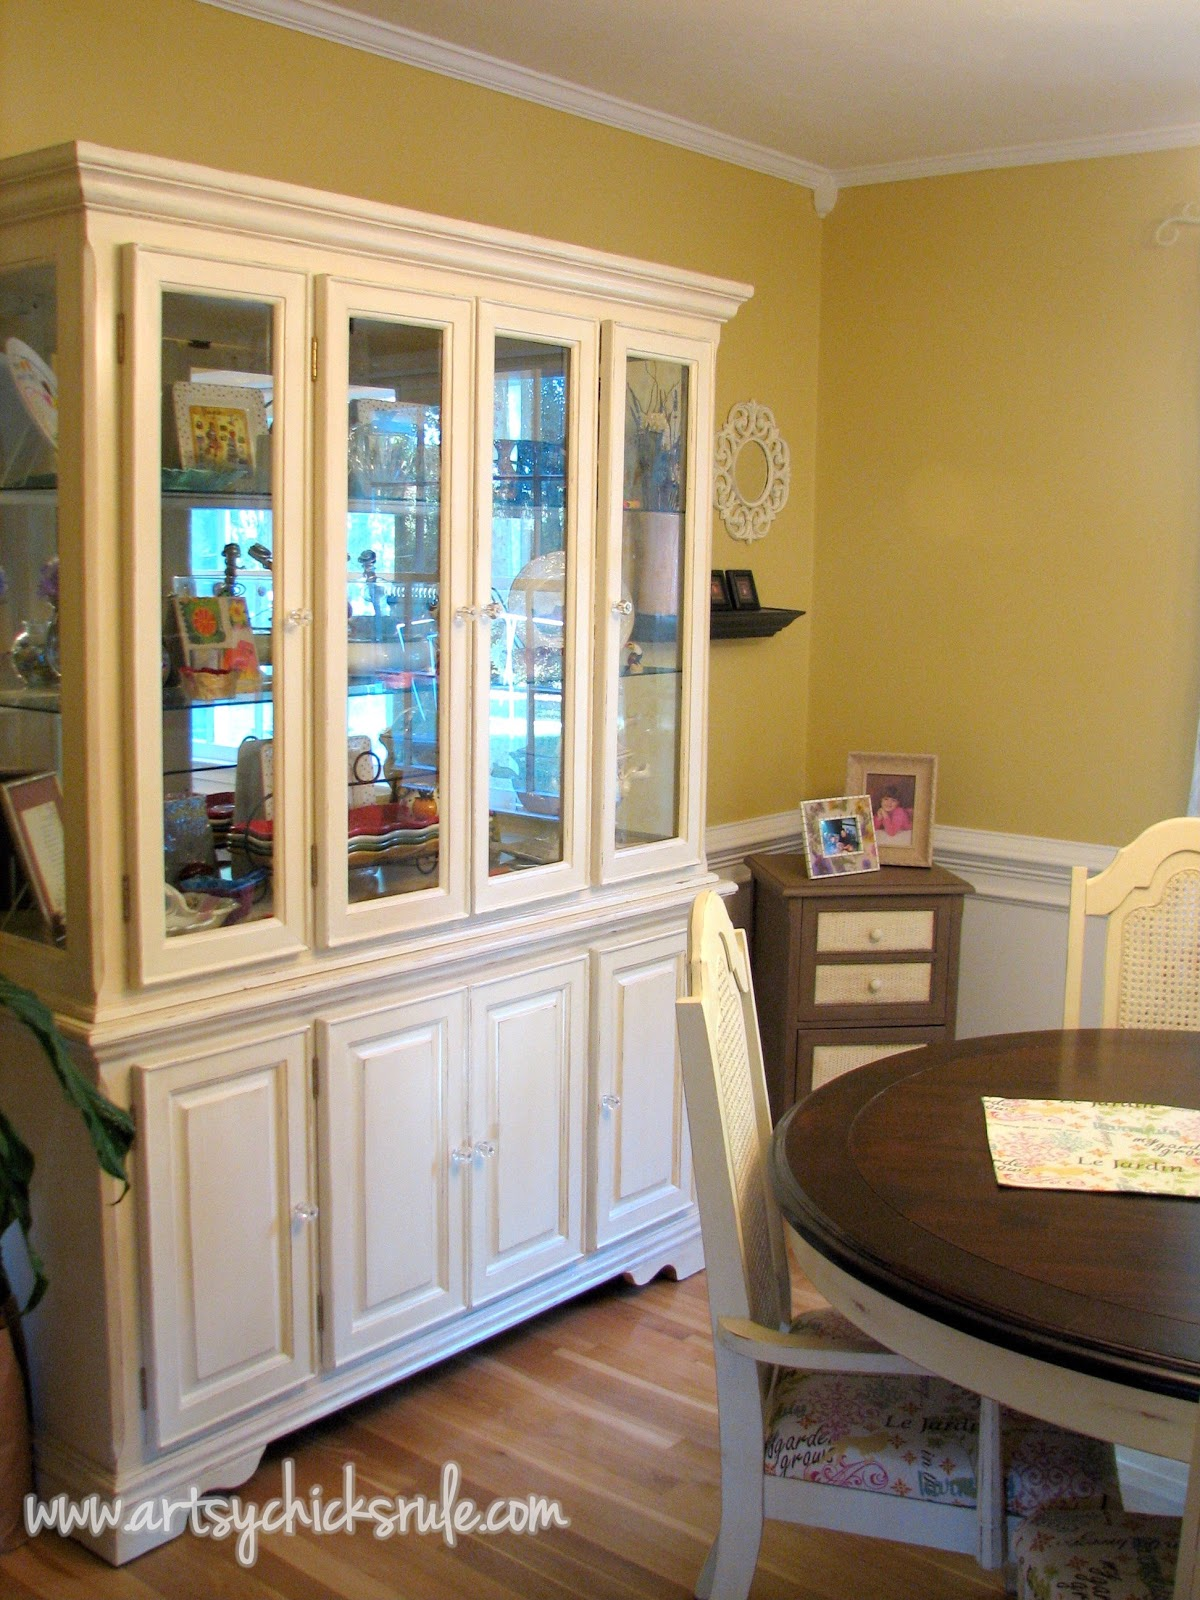 China Cabinet And Table Re Do Artsychicksrule.com